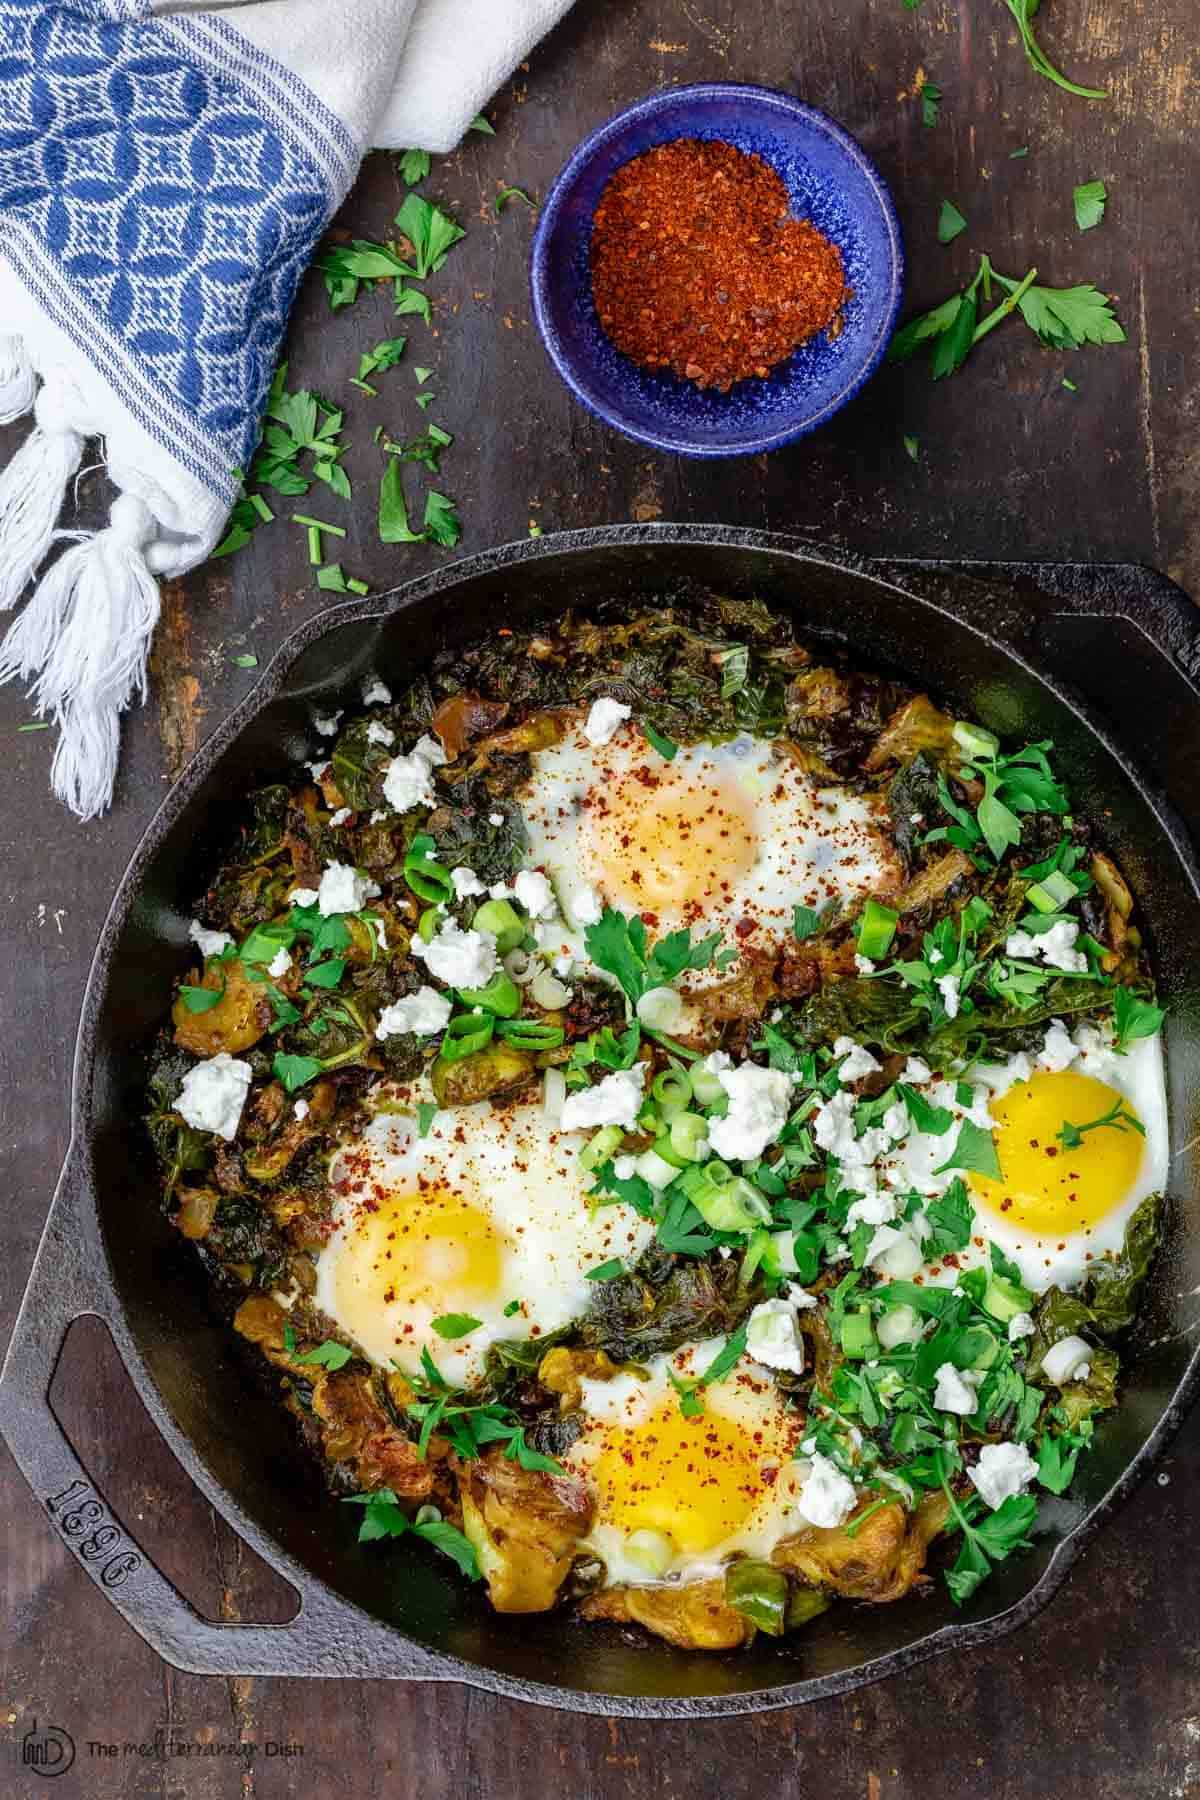 Green shakshuka served with parsley and feta cheese with a side of Aleppo chile pepper flakes